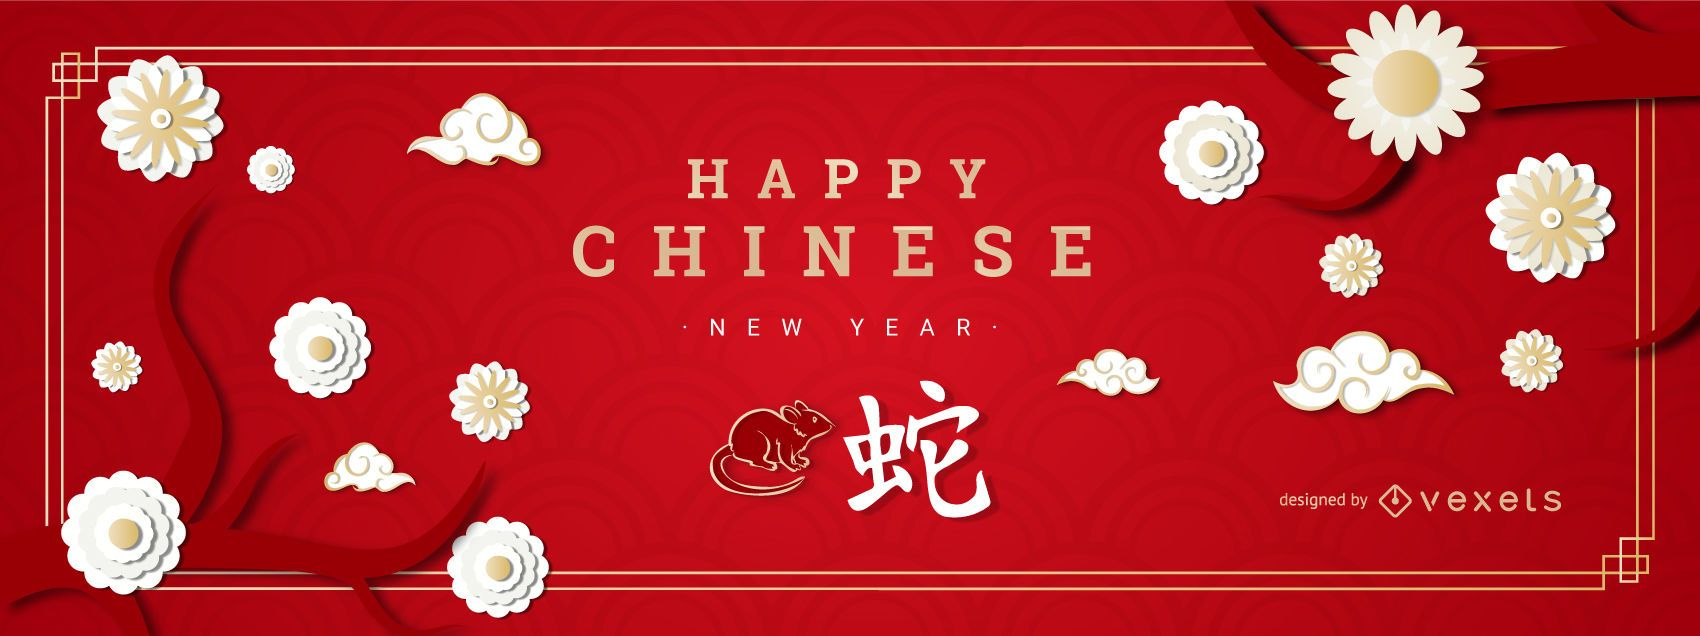 Chinese new year flower banner